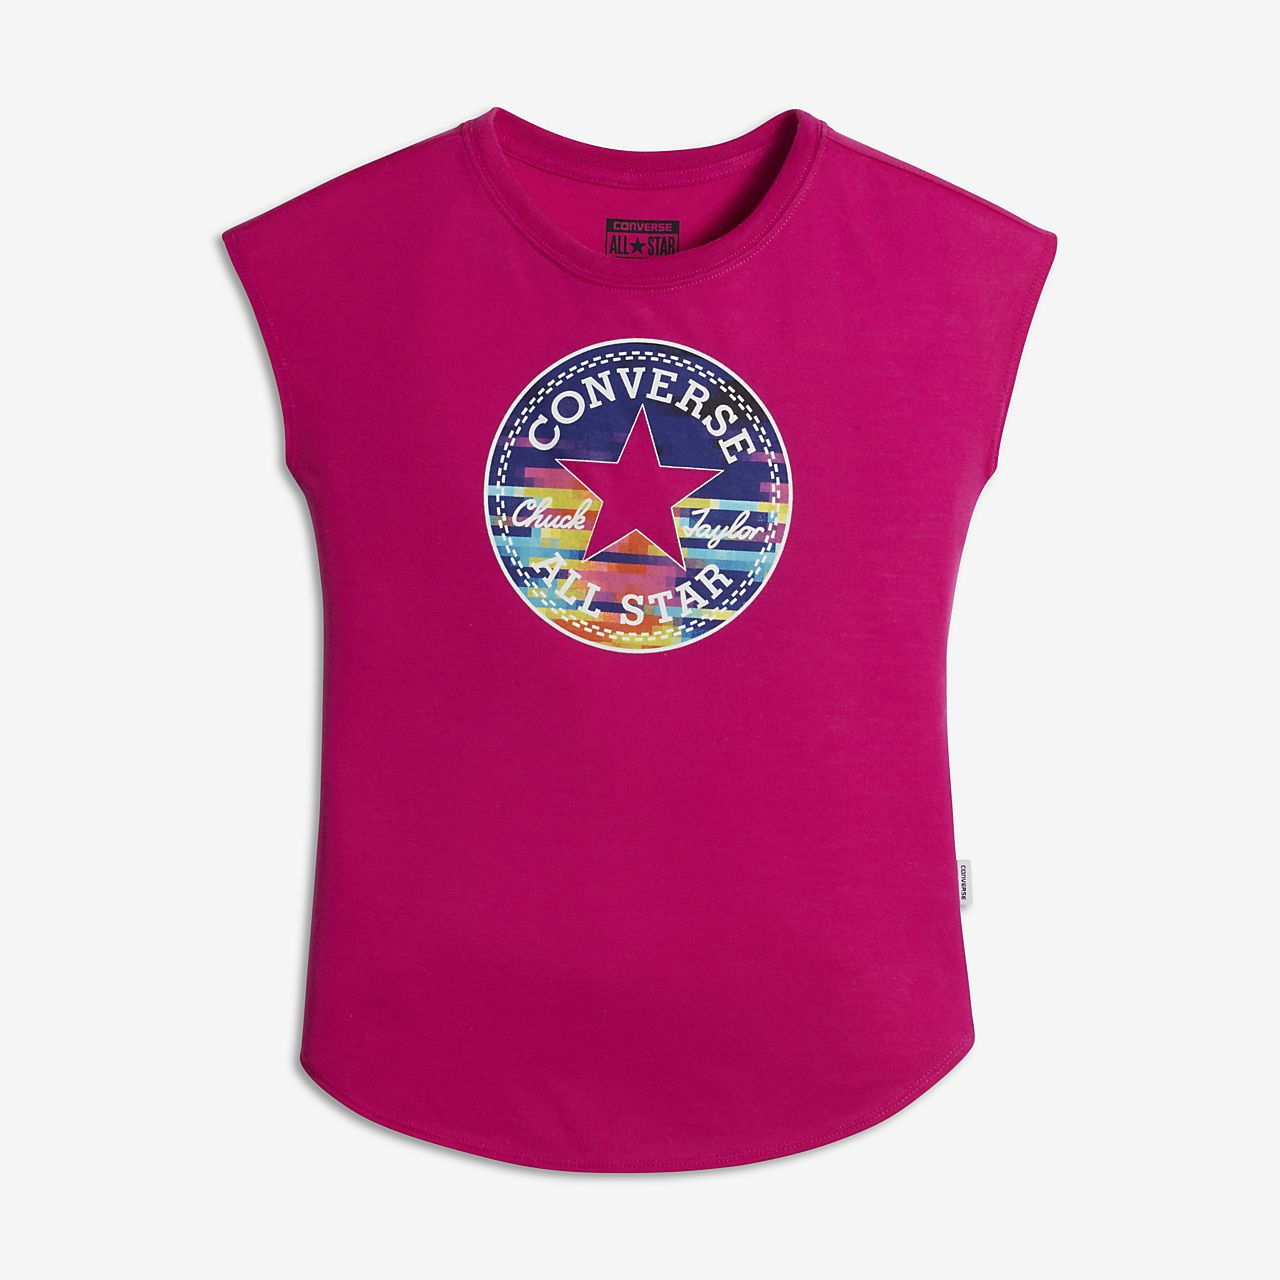 Converse Gradient Fill Big Kids' Muscle Tank Tops Magenta